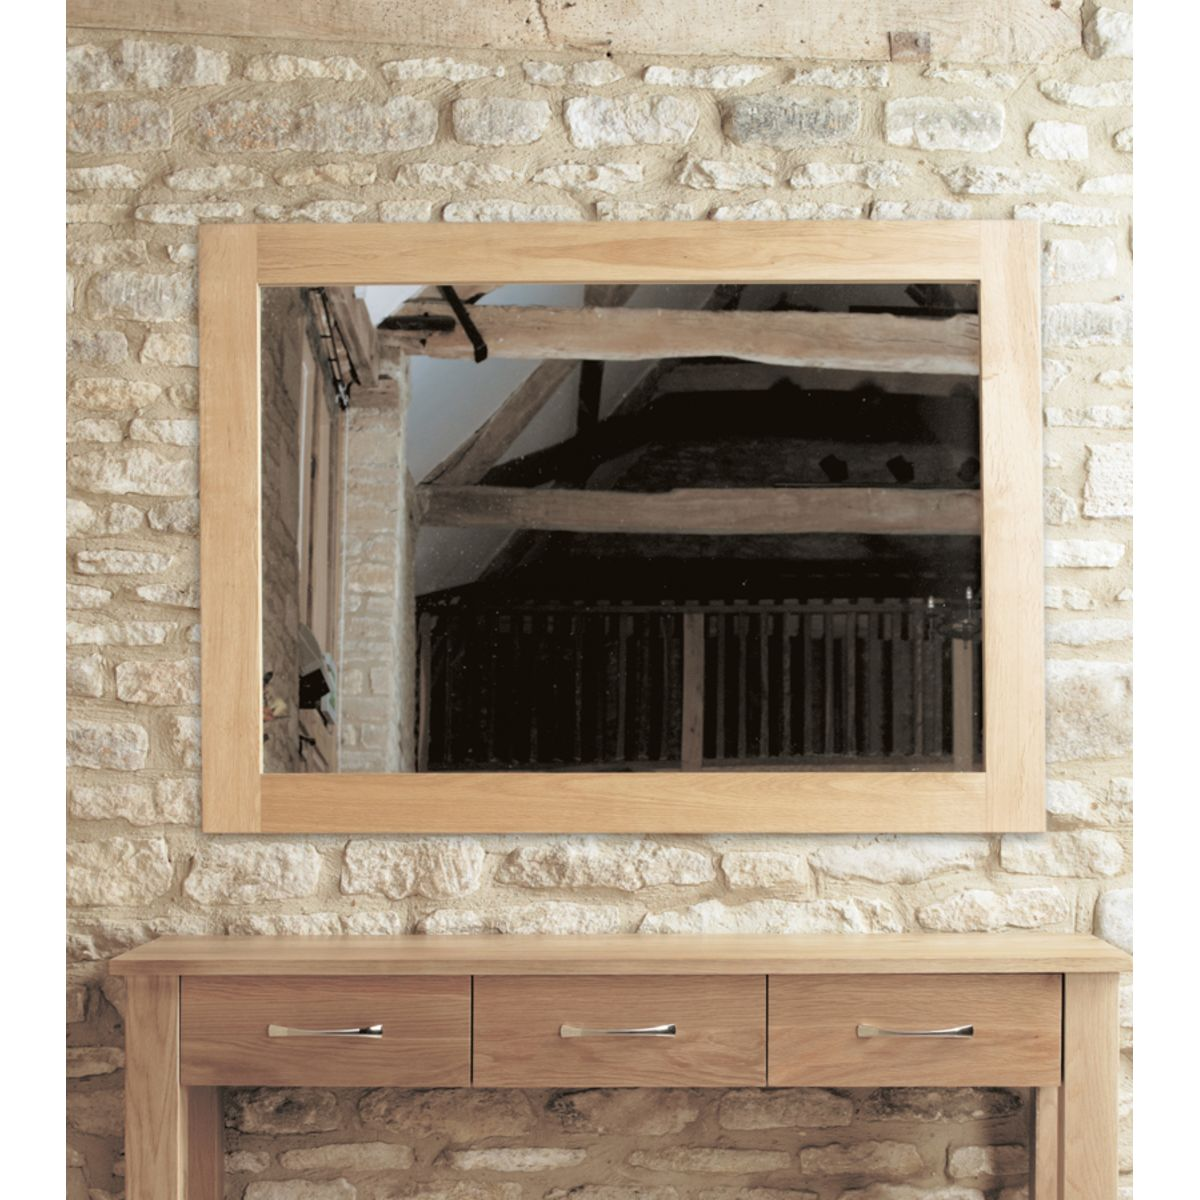 Give the illusion of extra space with an Oak Mirror